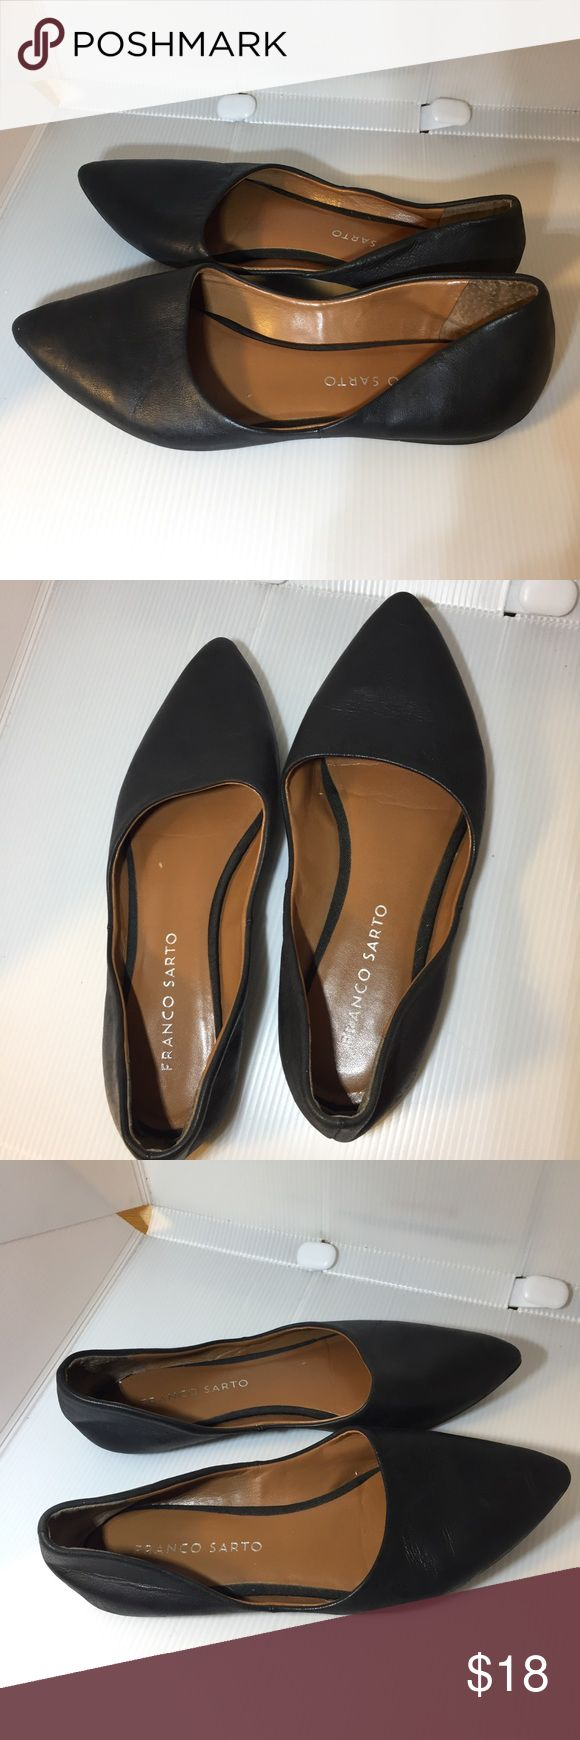 Franco Sarto L-Heath Black Leather Flats Size US 5. Preowned with some wear. See pictures. Franco Sarto Shoes Flats & Loafers